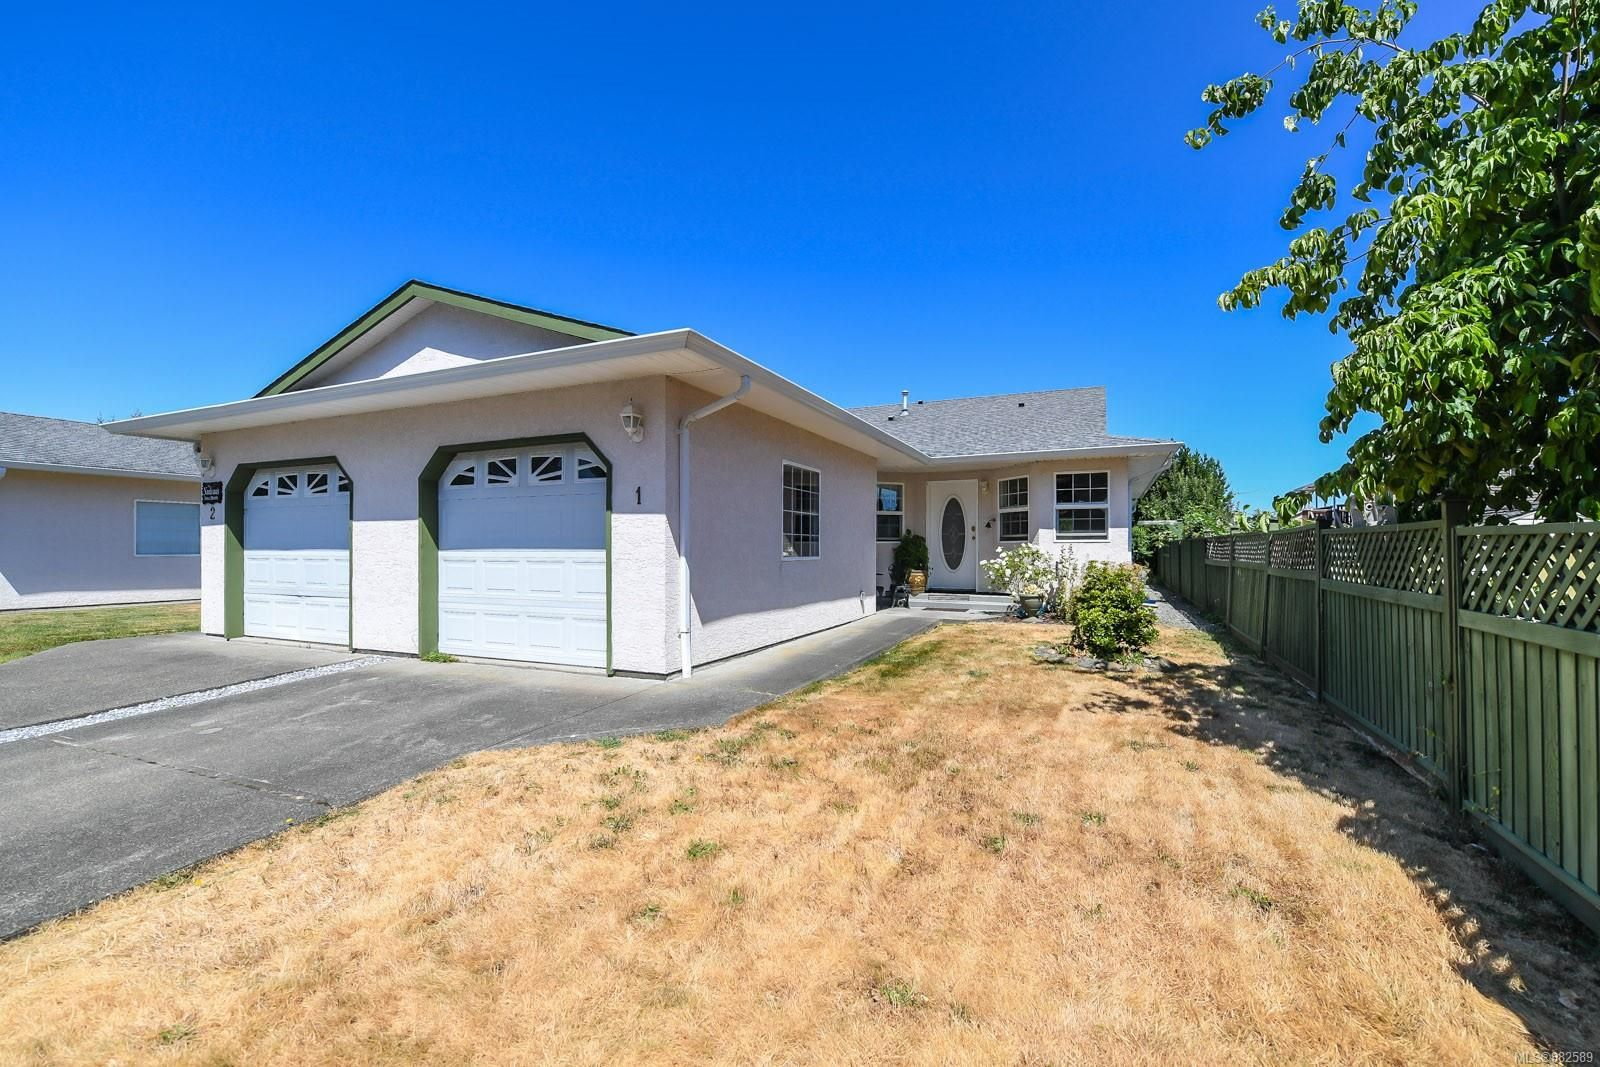 Main Photo: 1 3355 First St in : CV Cumberland Row/Townhouse for sale (Comox Valley)  : MLS®# 882589